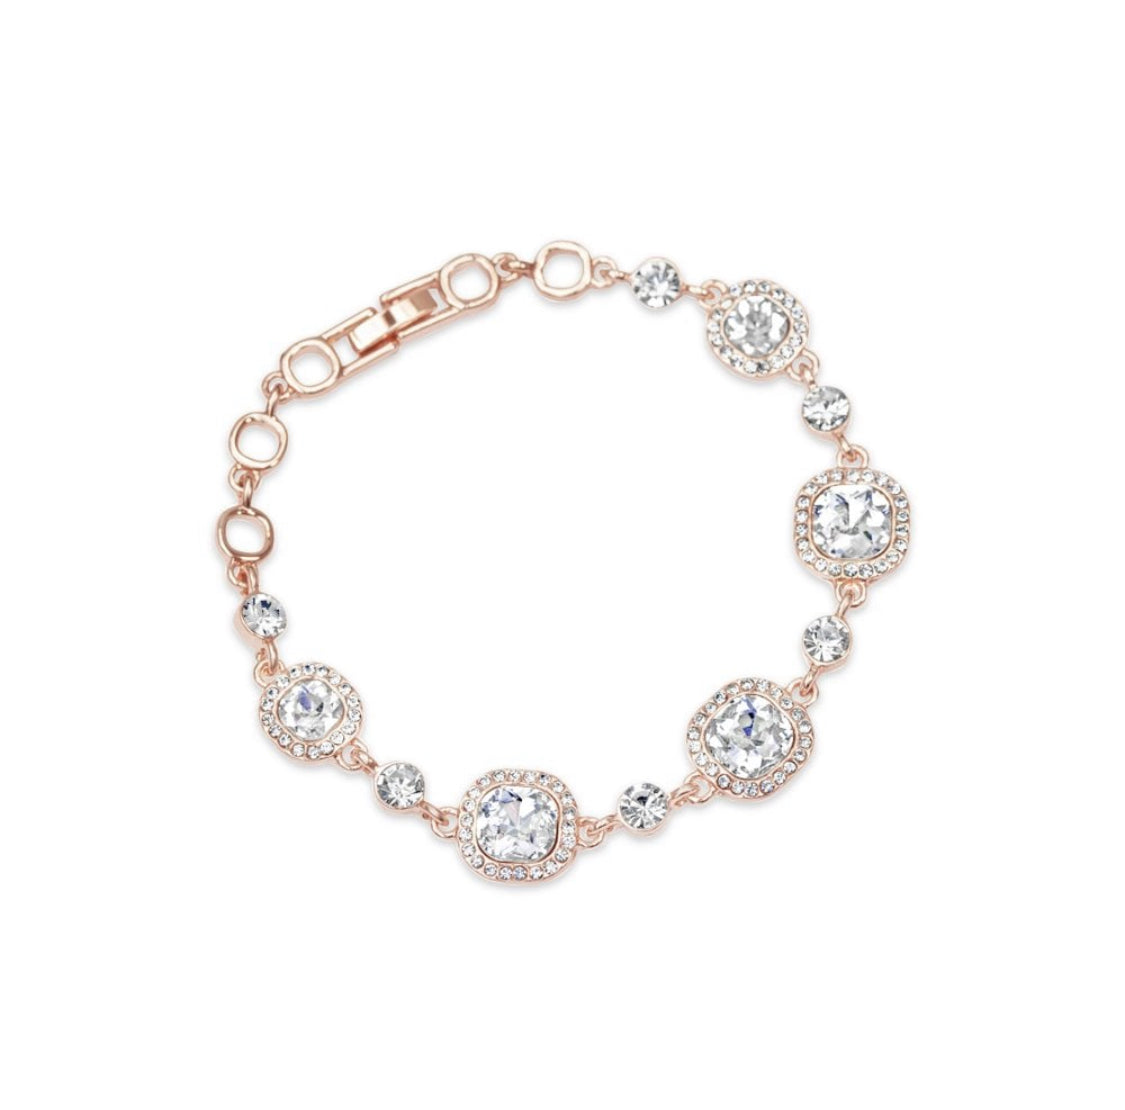 Camilia - Stunning Swarovski and Rose Gold Bracelet